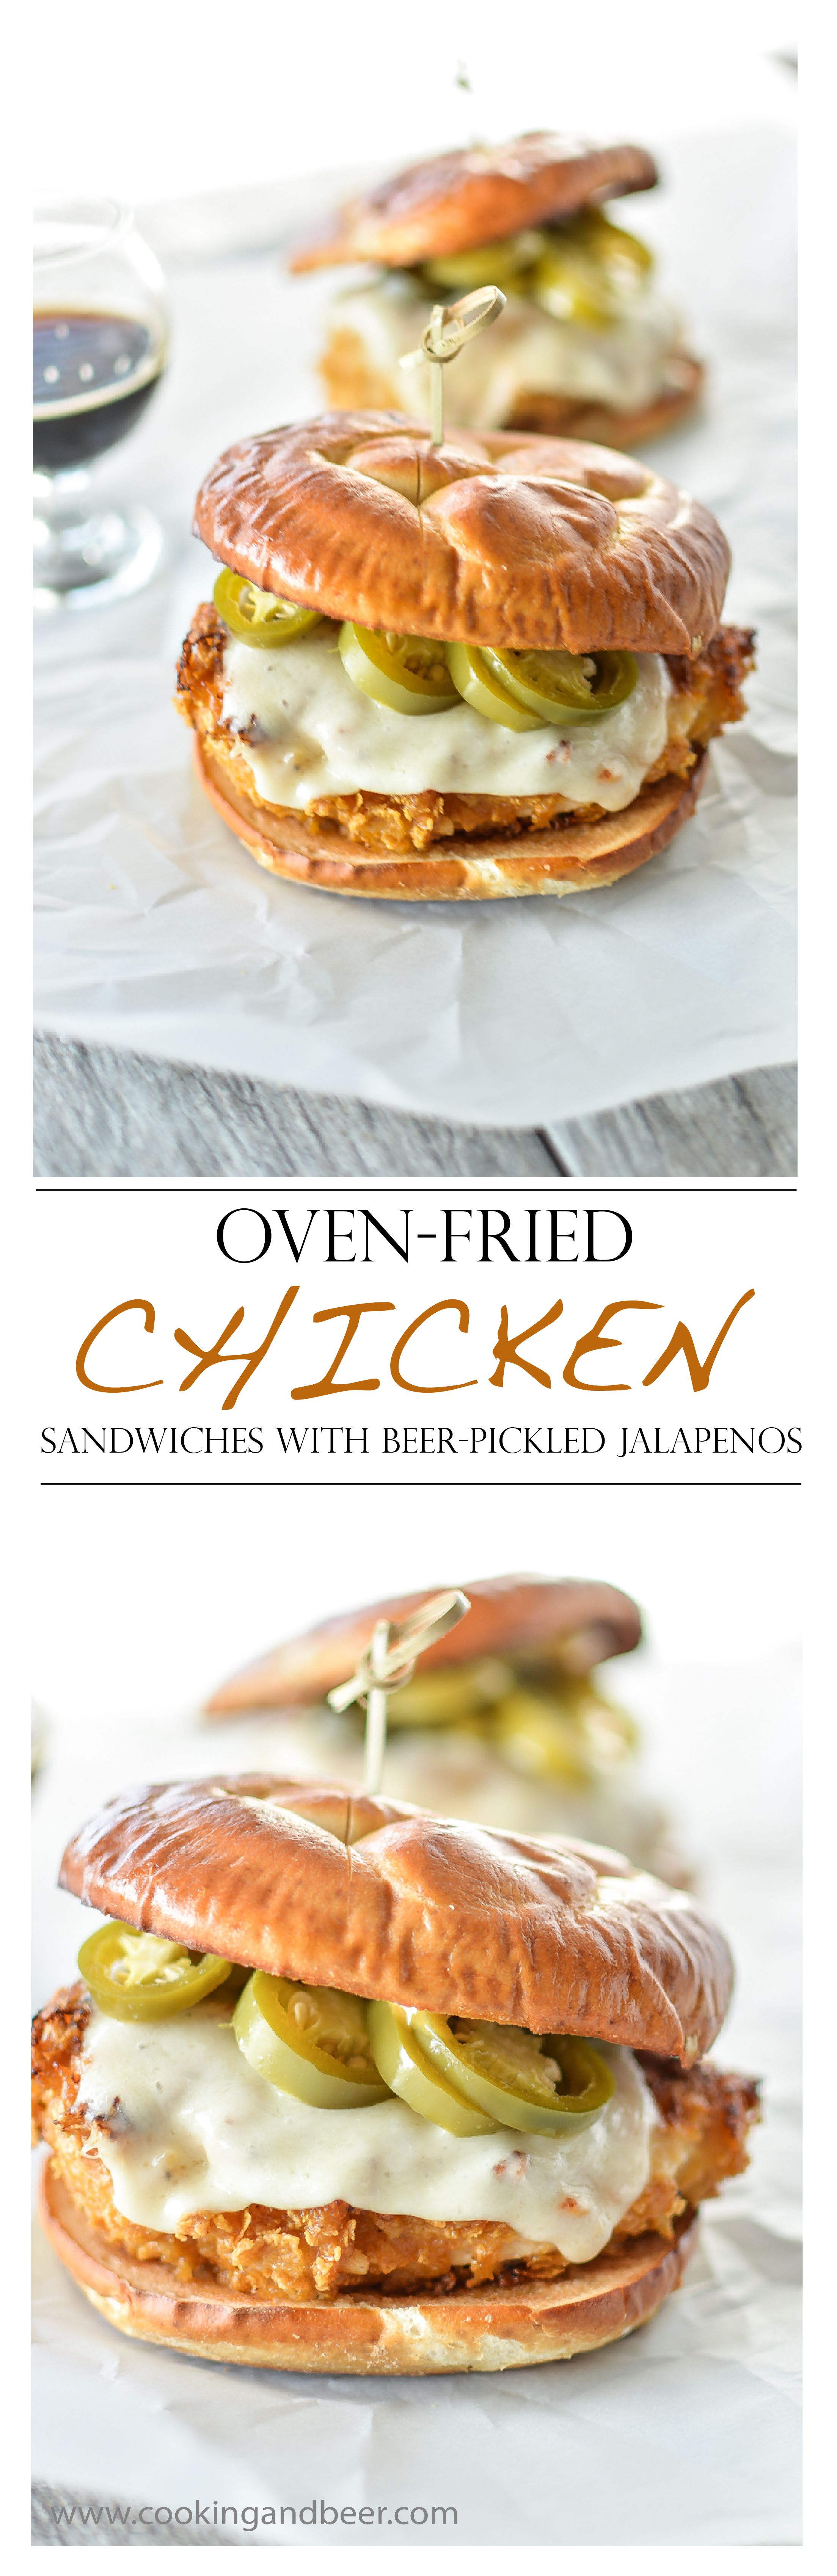 Oven-Fried Chicken Sandwiches with Beer-Picked Jalapeños and Spicy ...